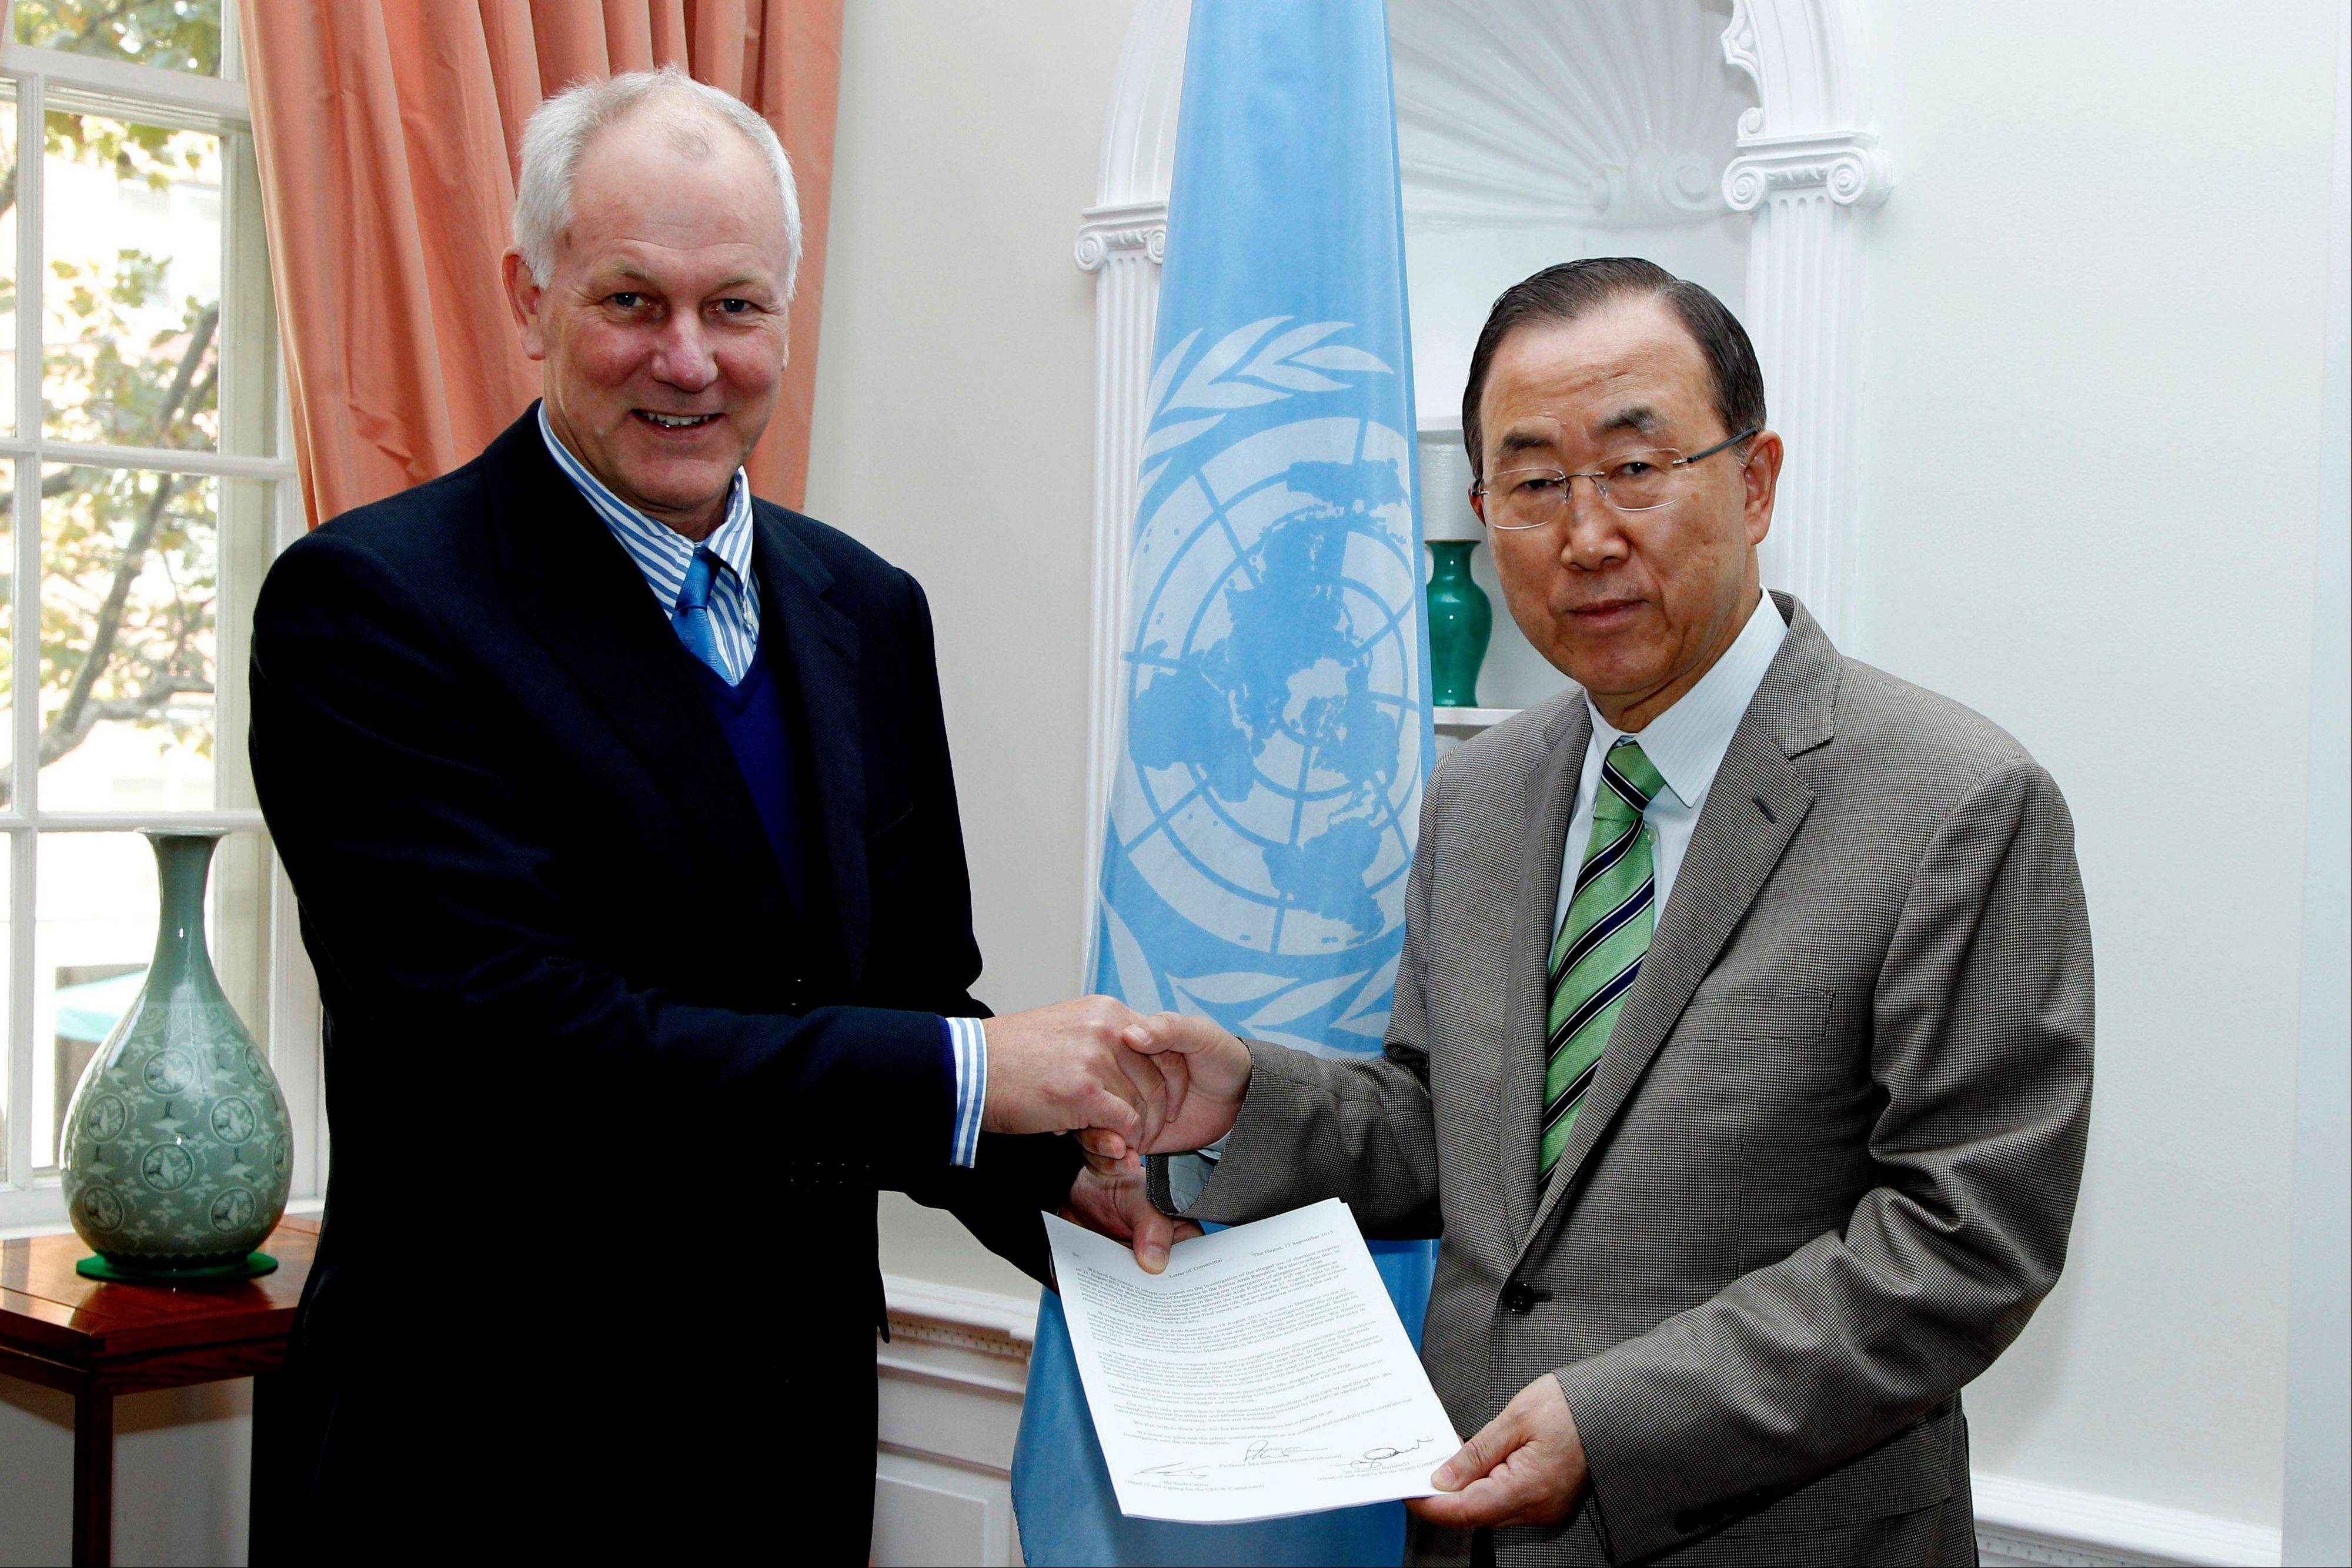 Professor Ake Sellstrom, head of the chemical weapons team working in Syria, hands over the report on the Al-Ghouta massacre to Secretary-General Ban Ki-moon Sunday.